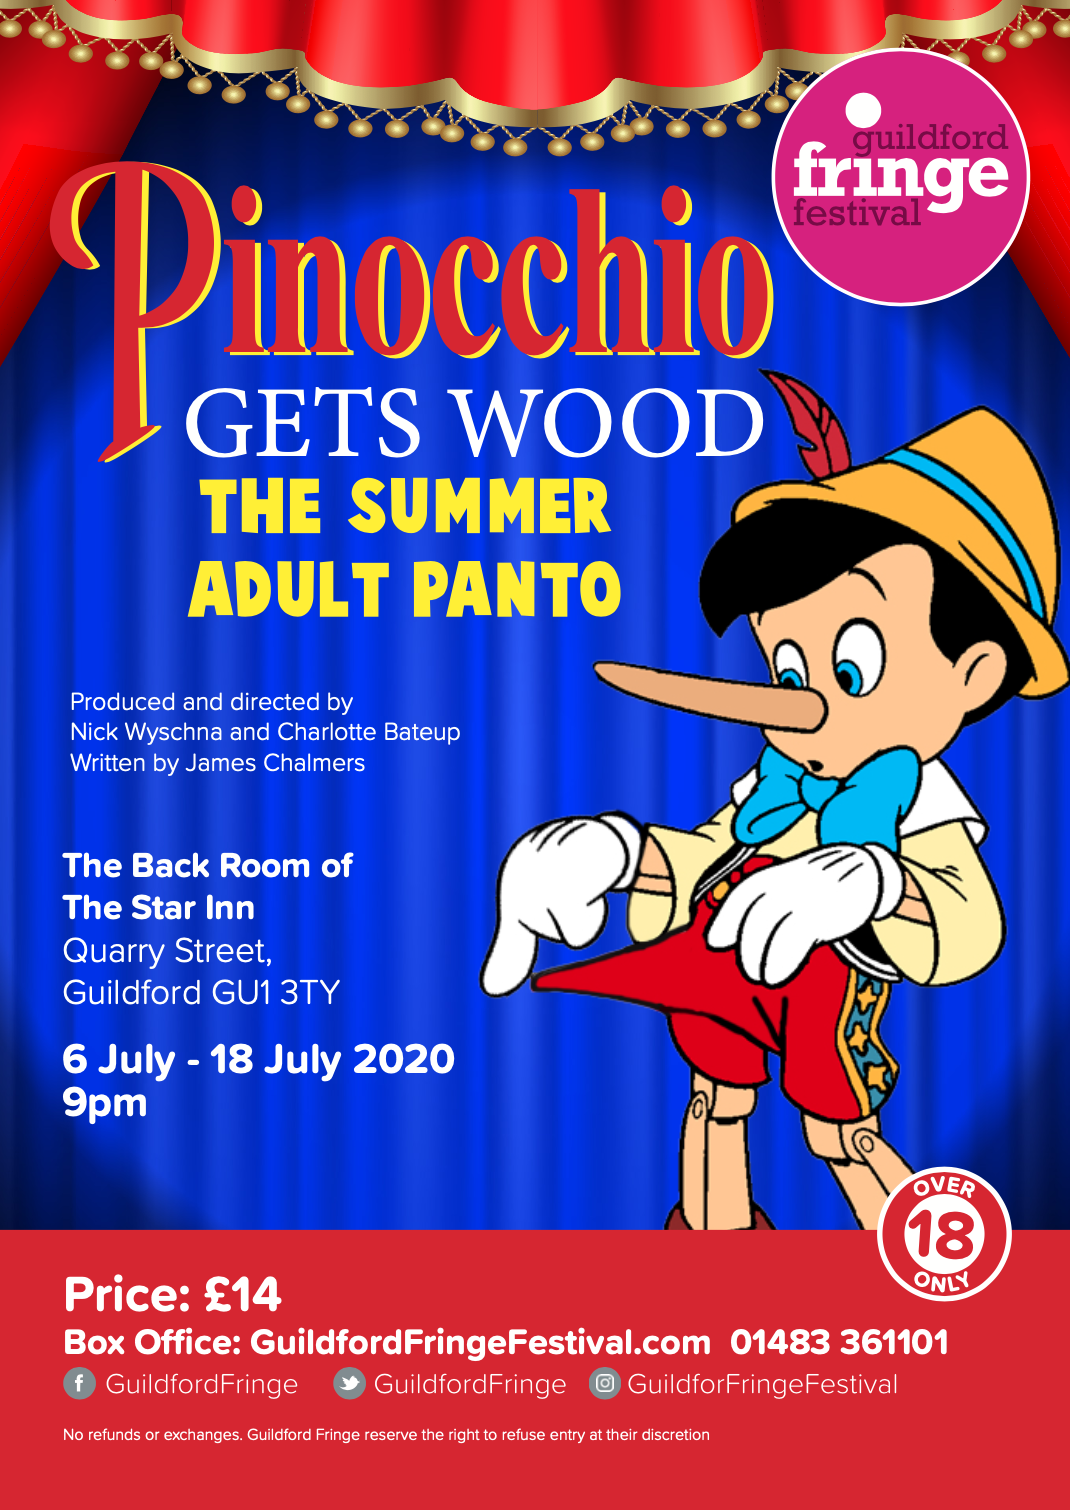 Pinocchio Gets Wood the SUMMER Adult Panto